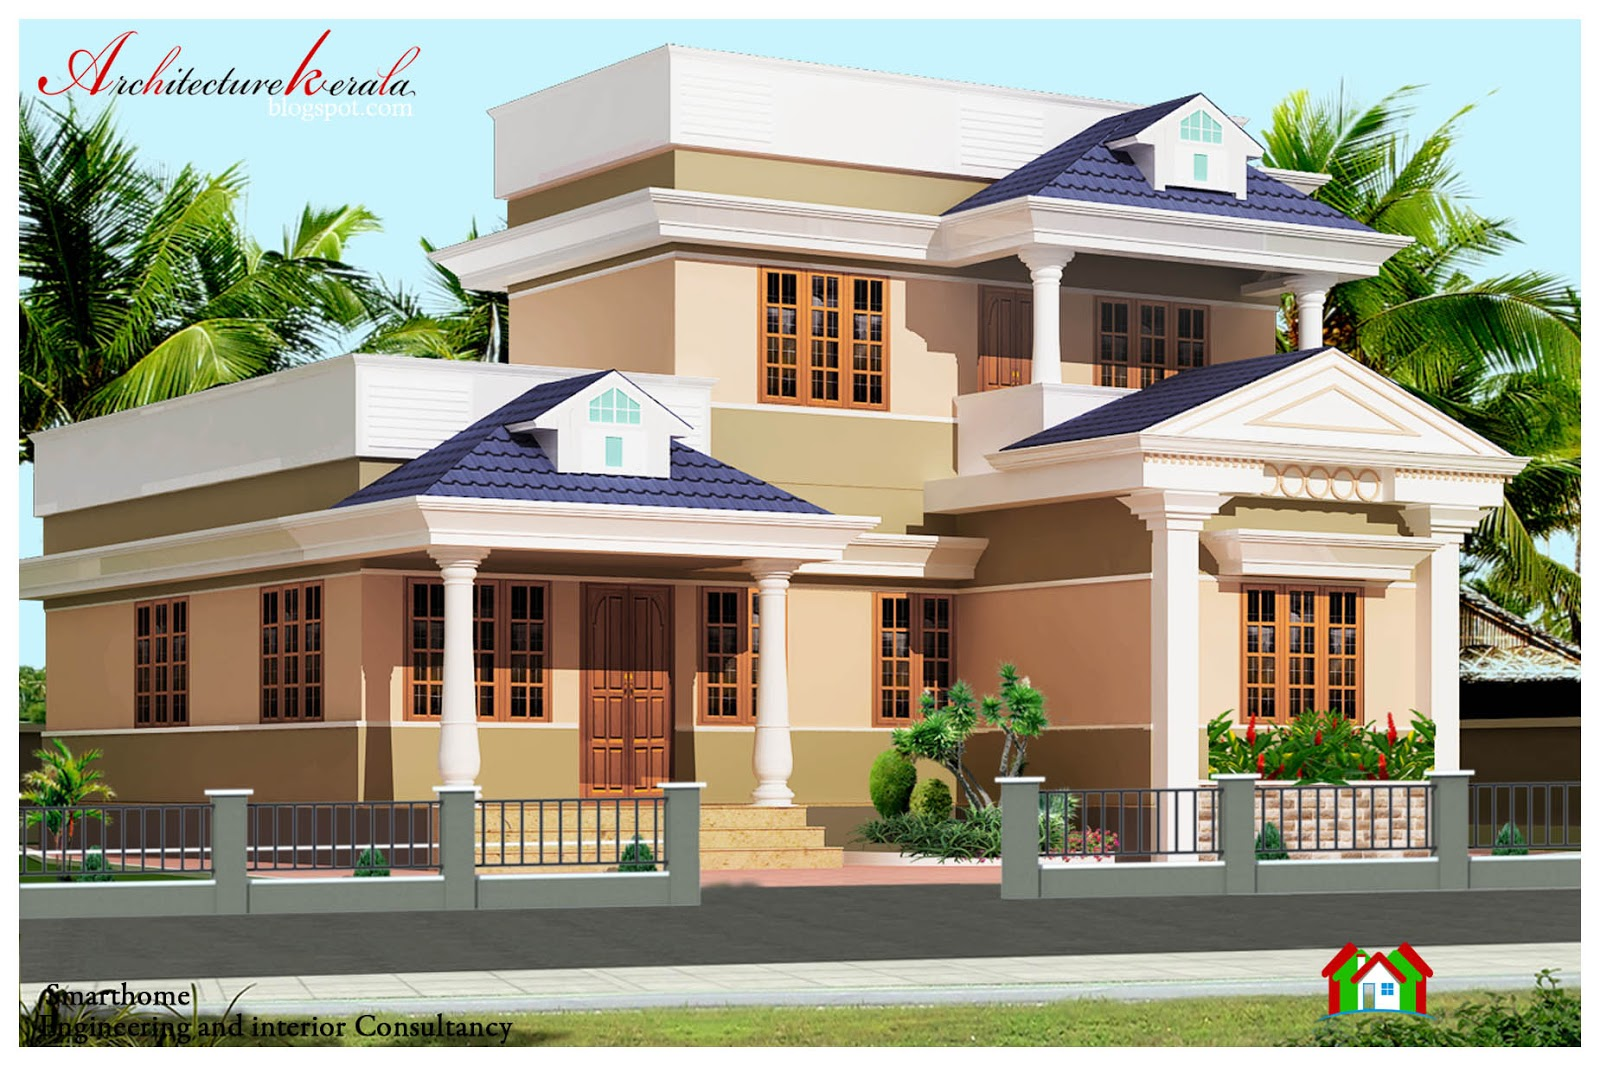 Architecture kerala 1000 sq ft kerala style house plan for Home designs in kerala